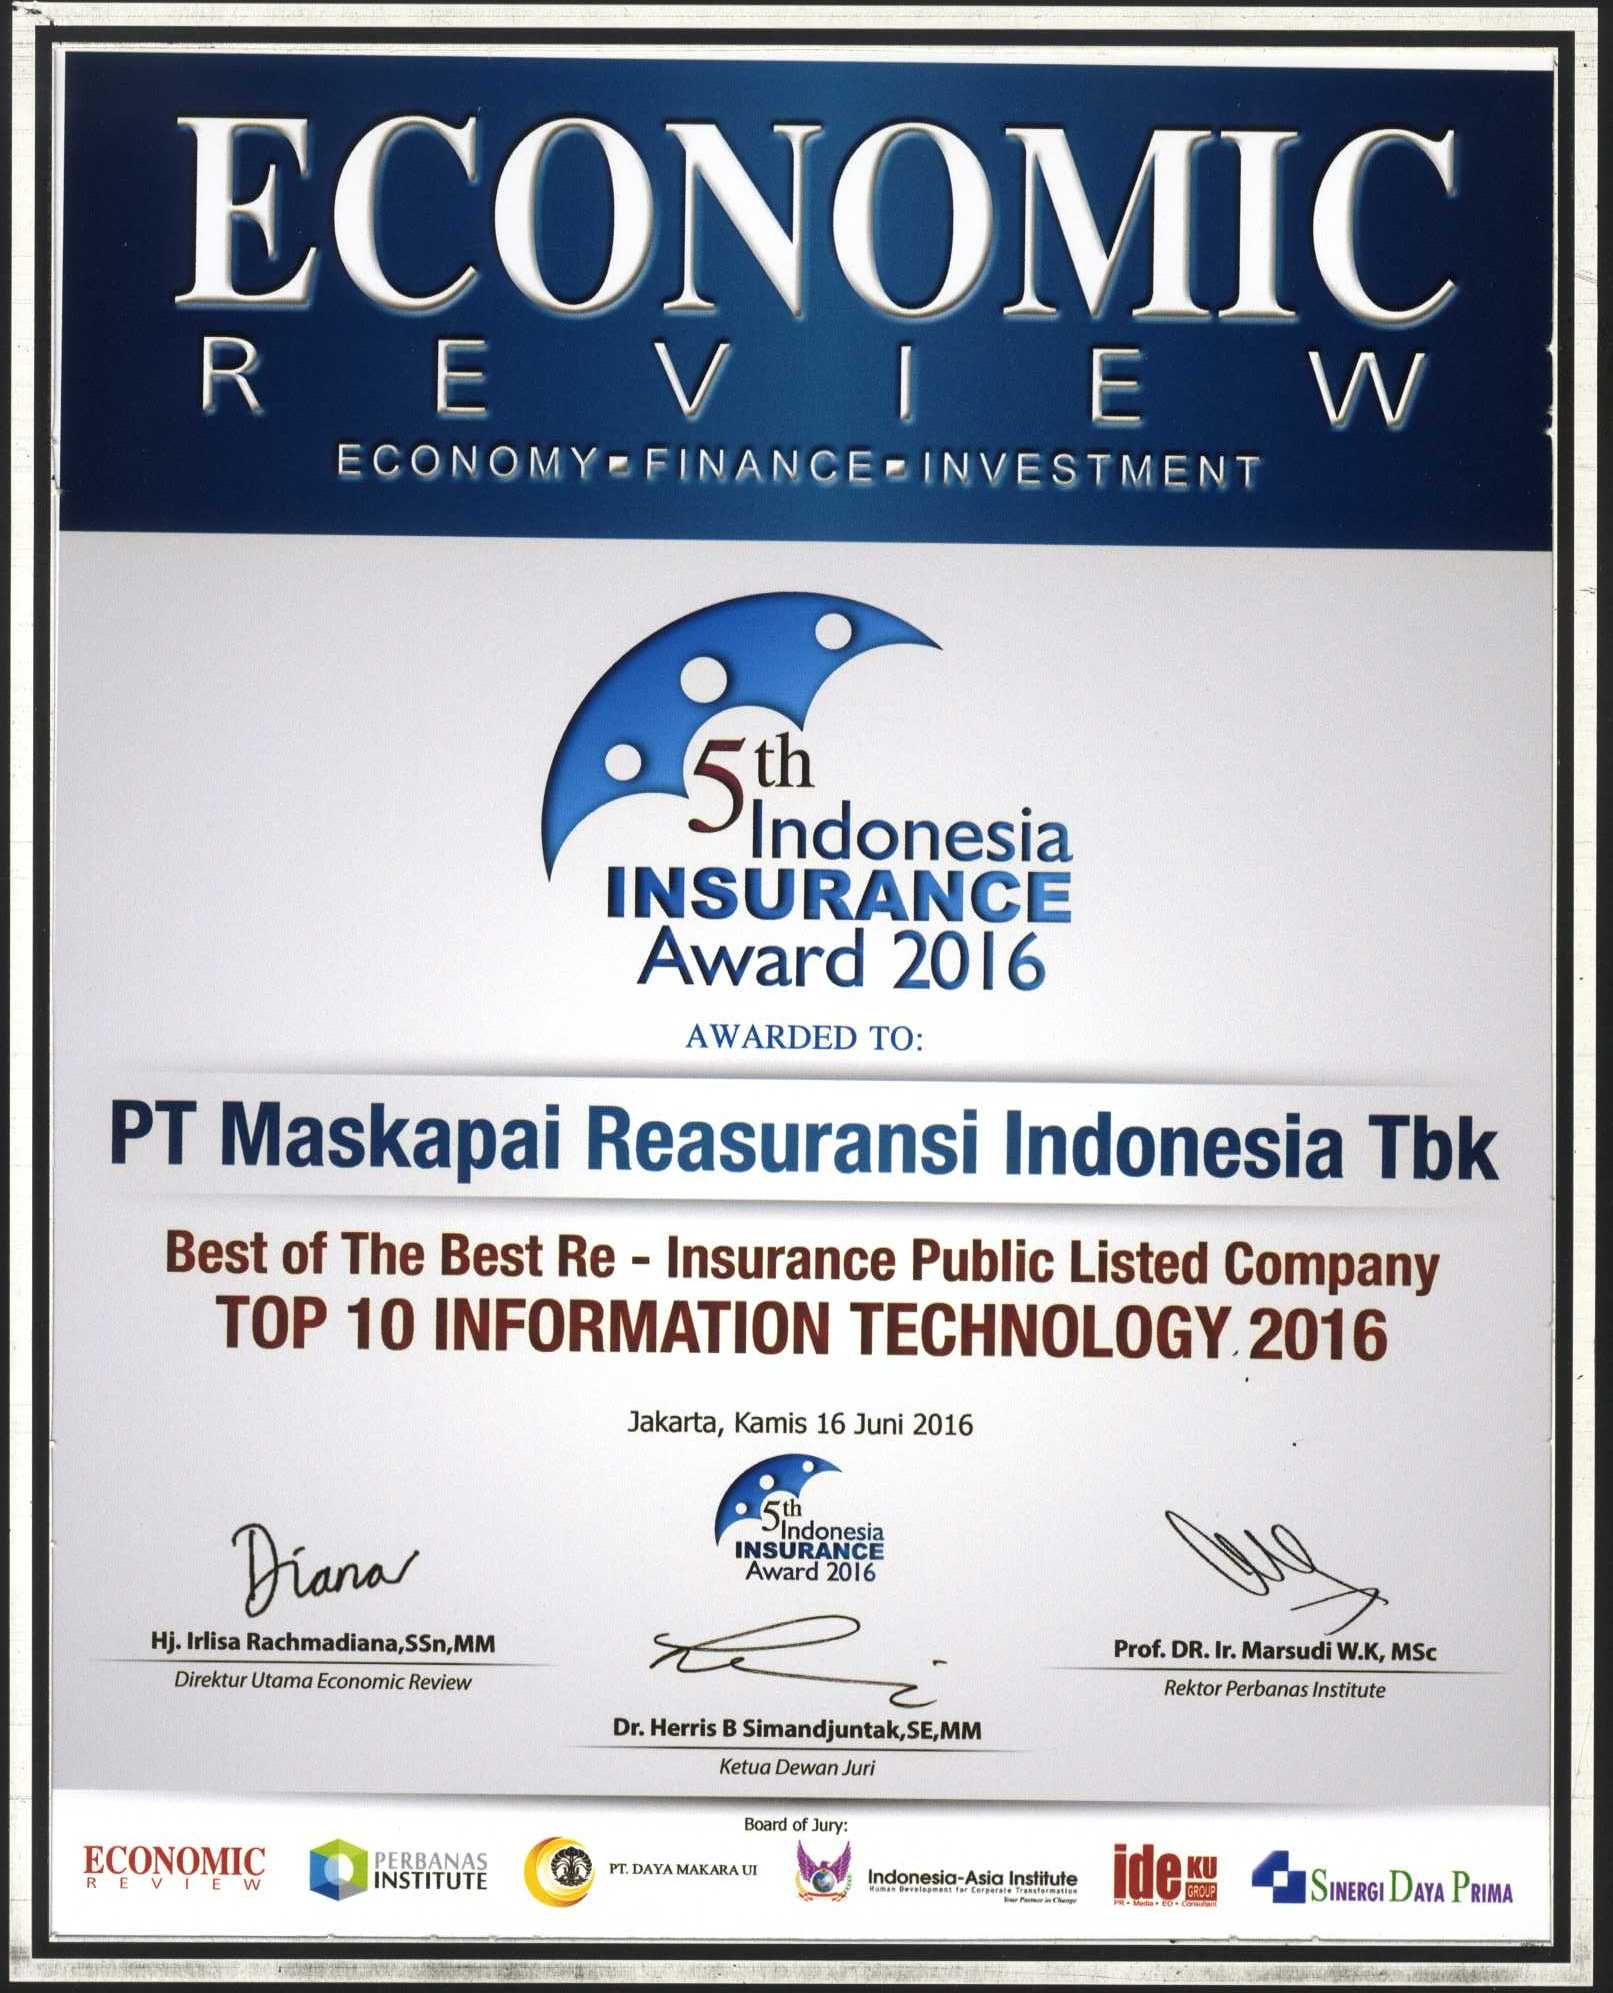 Majalah Economic Review : Top 10 Information Technology 2016 - 5th Indonesia Insurance Award 2016